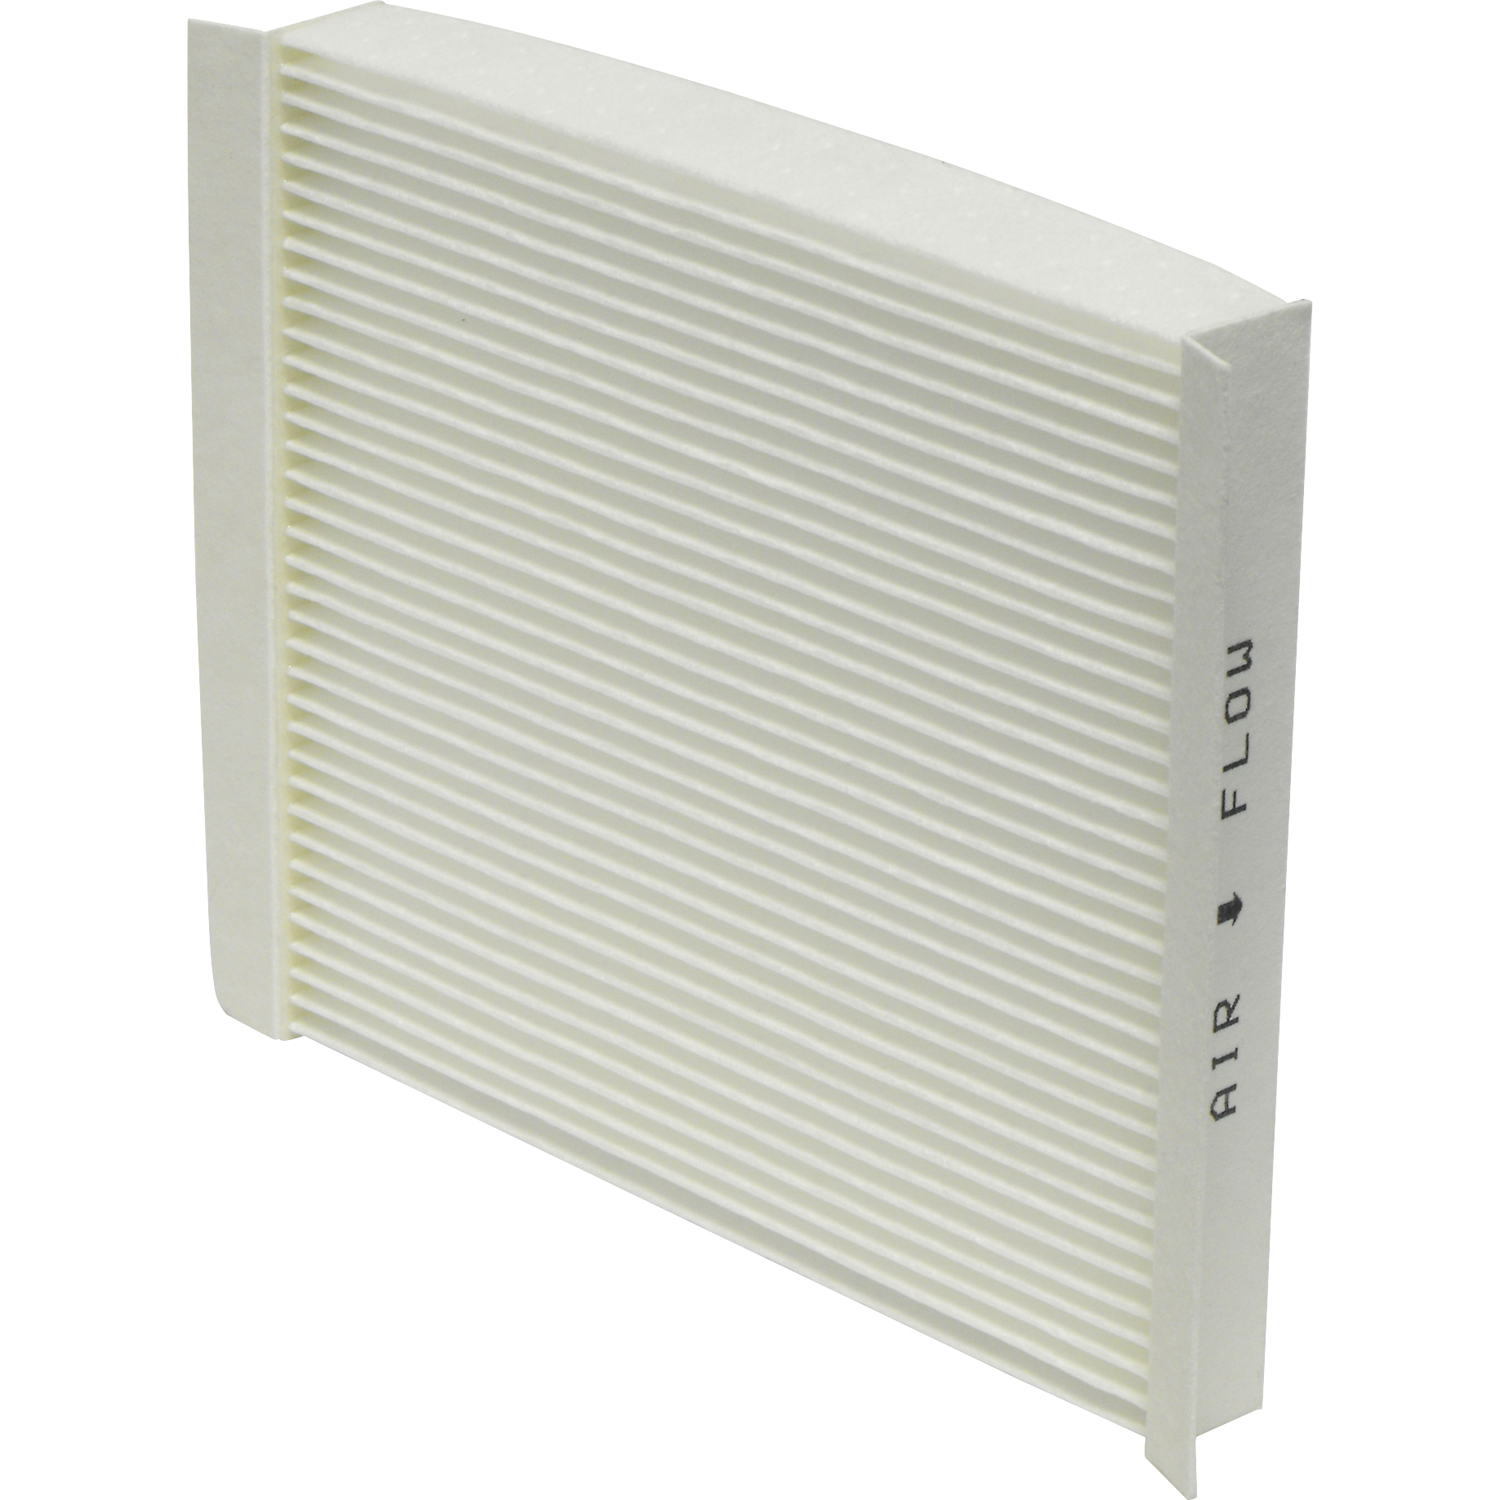 Particulate Cabin Air Filter FI 1116C